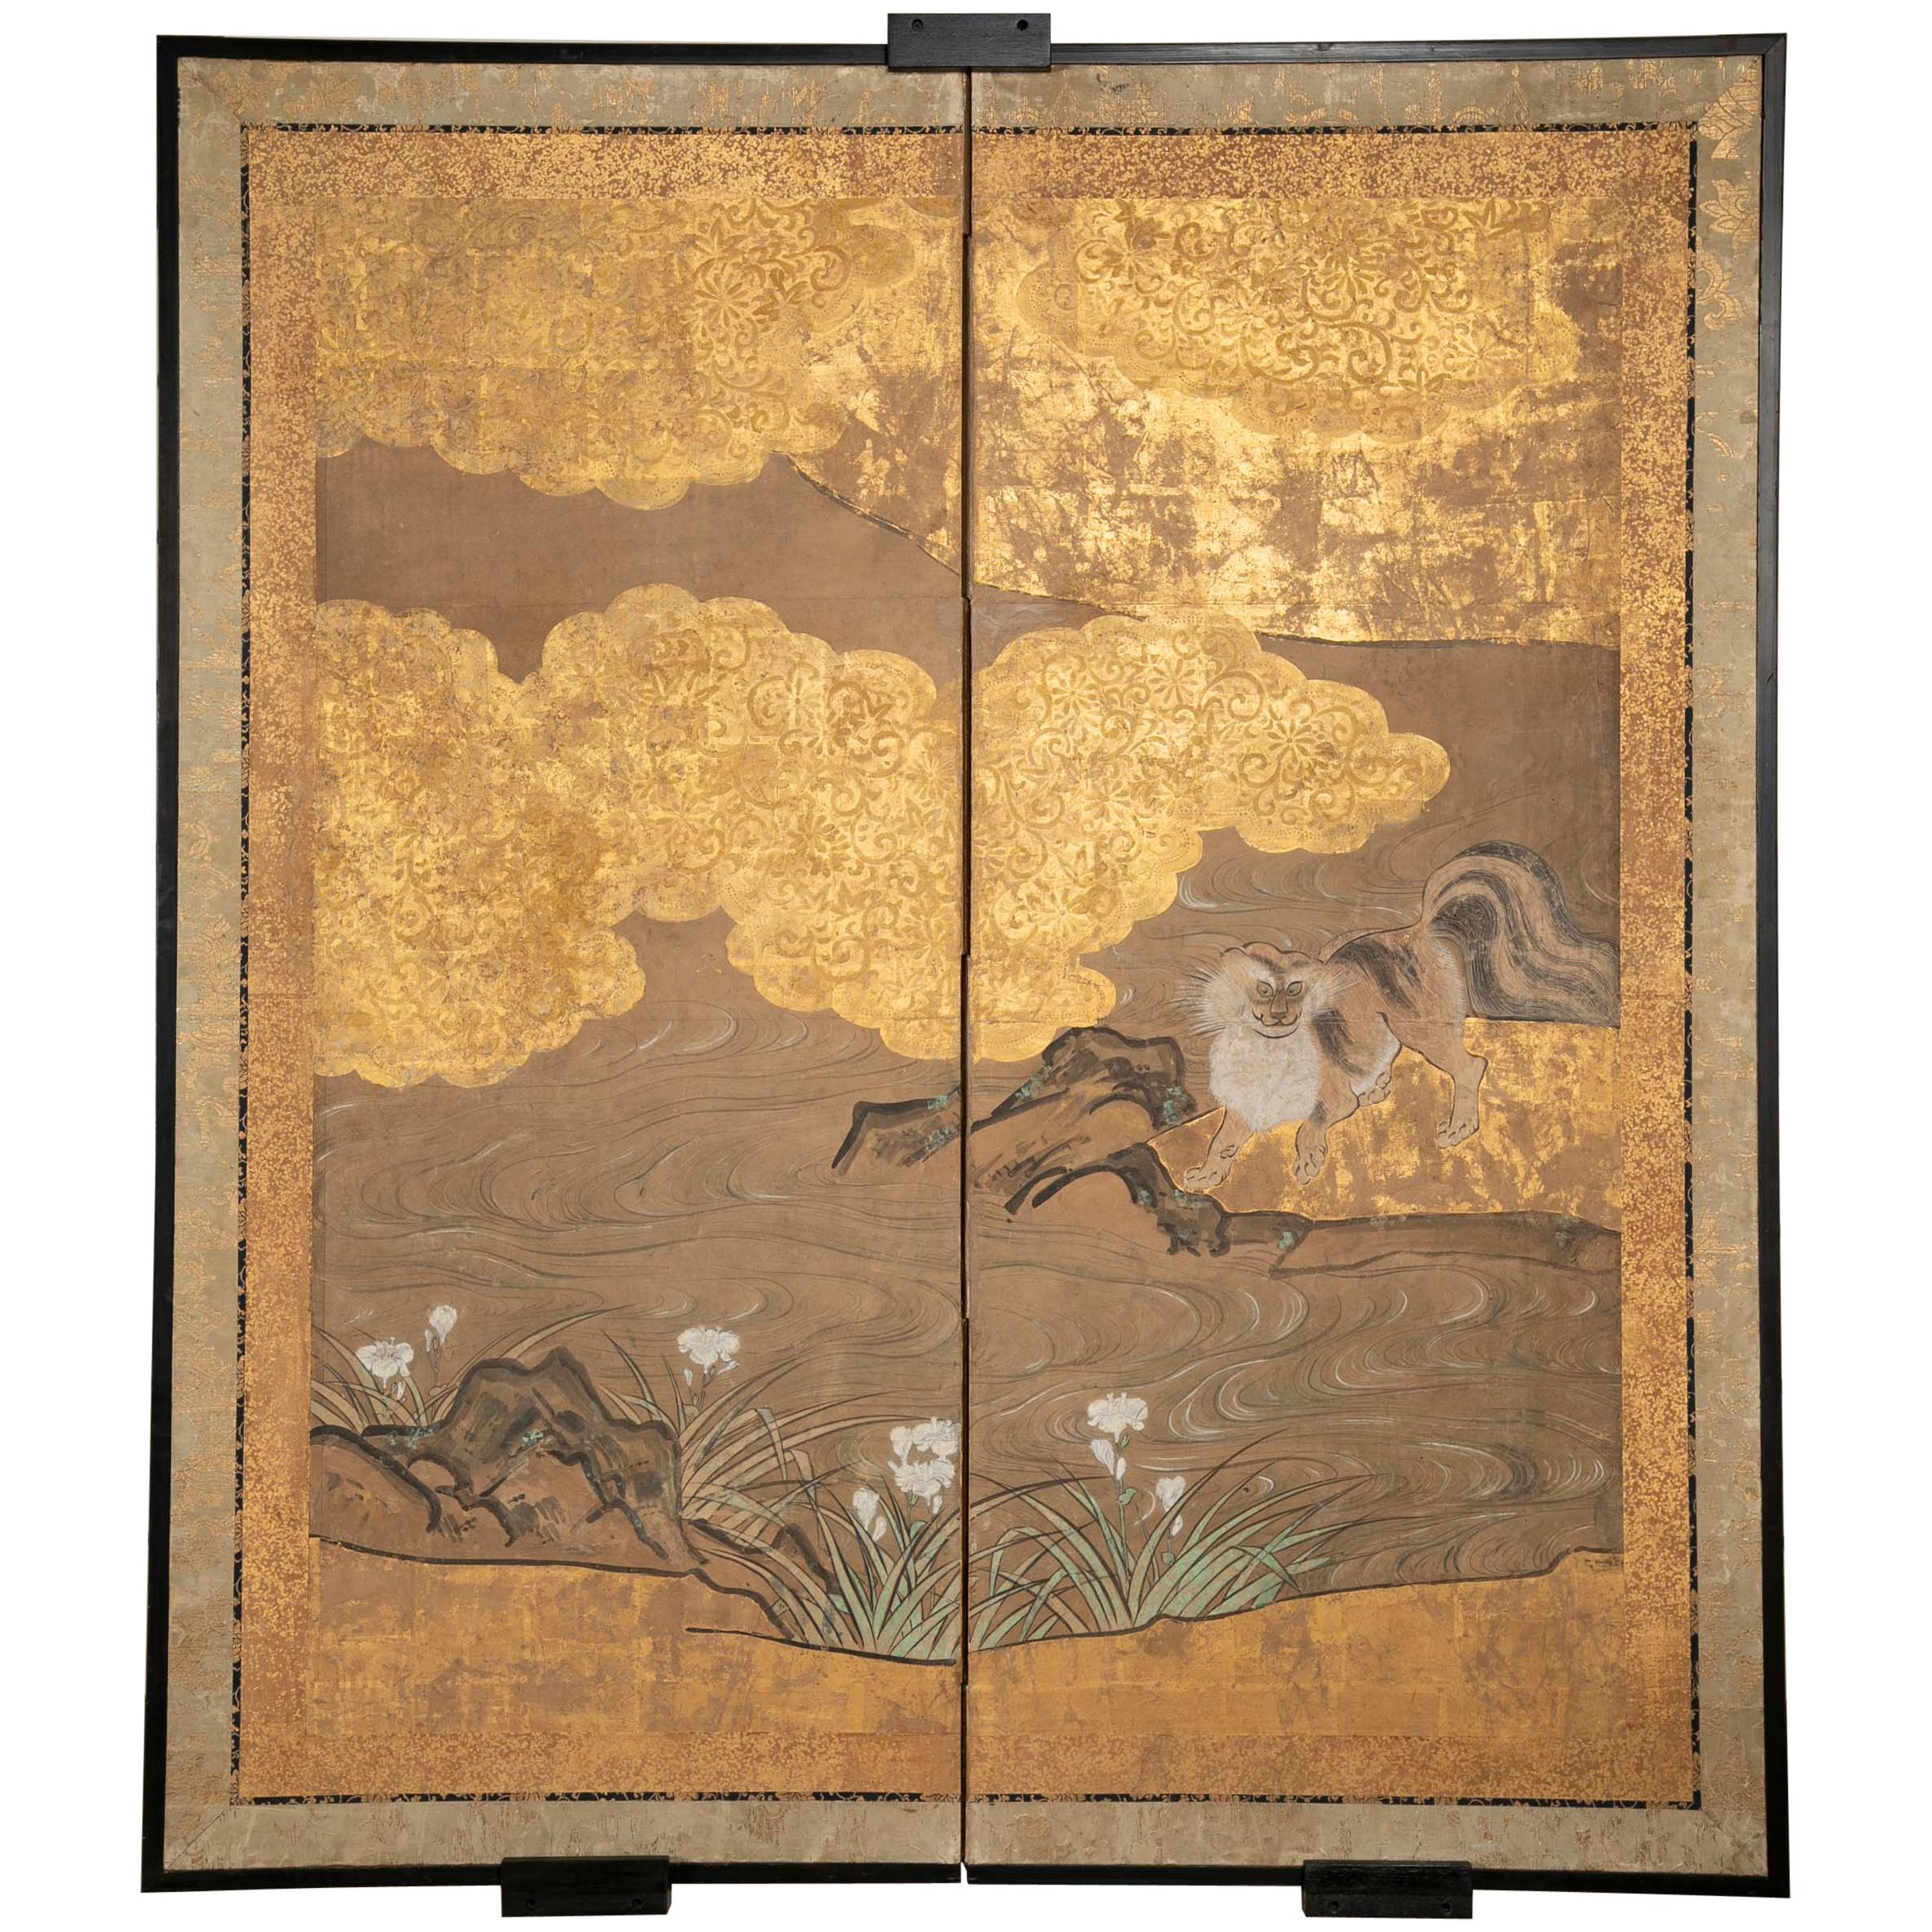 Two-Panel Japanese Kano School Style Screen